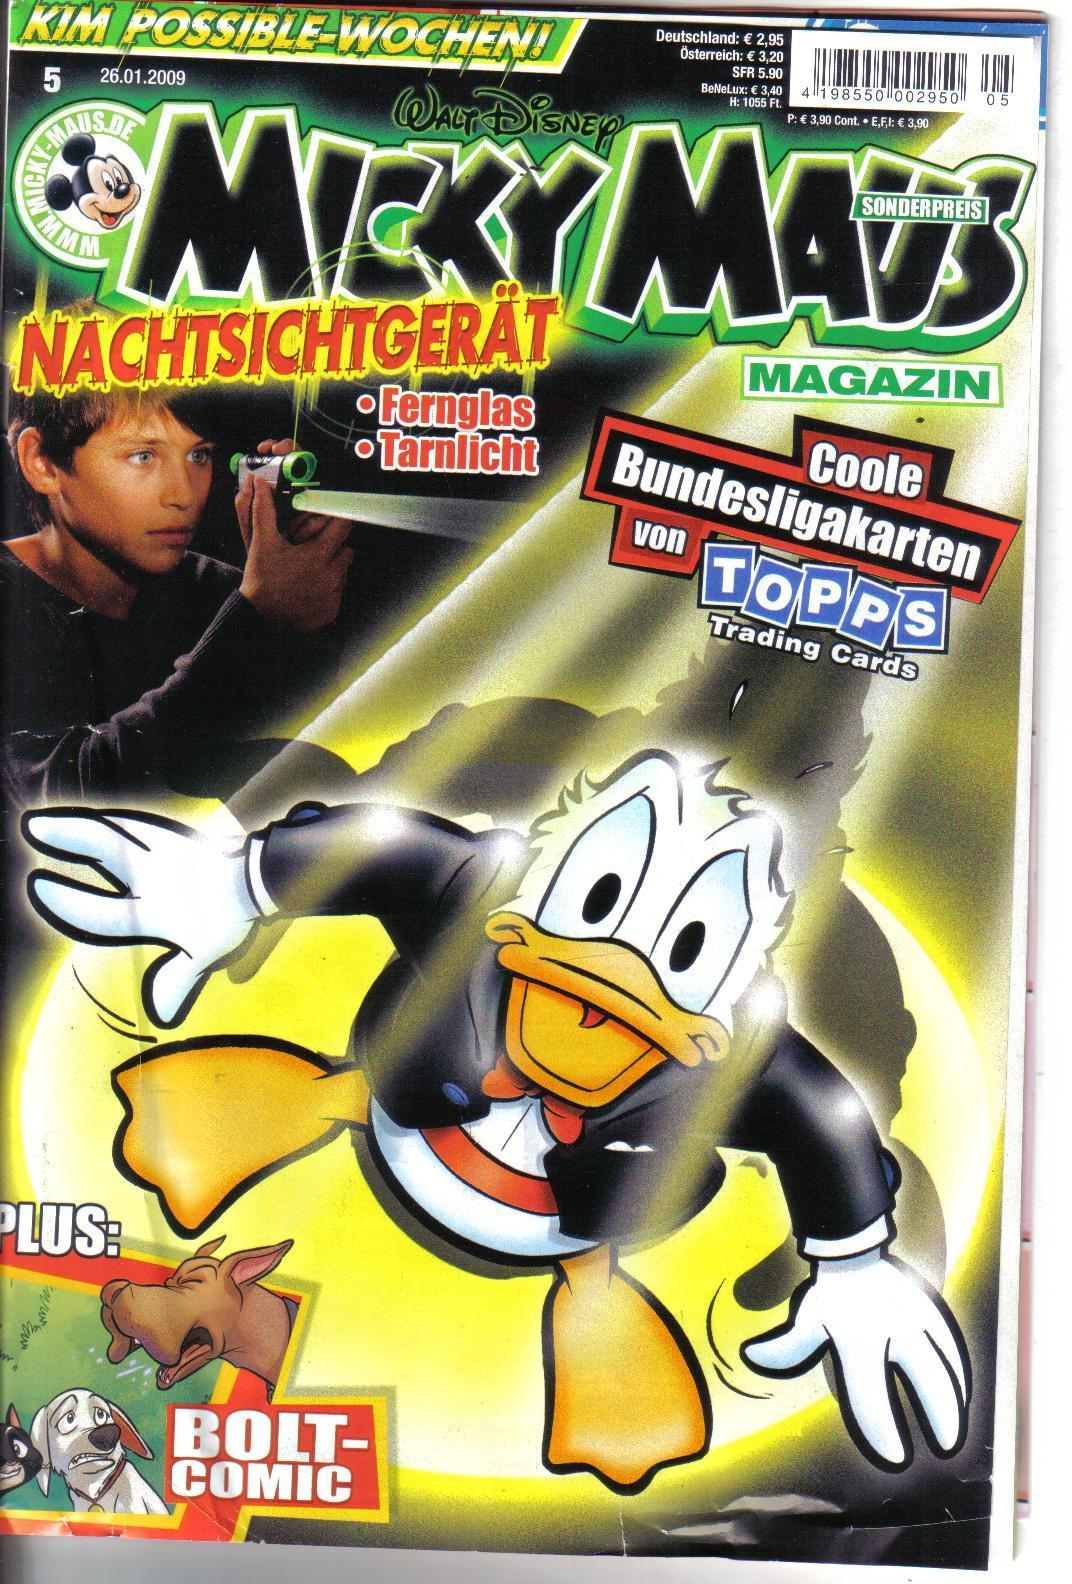 Micky Maus  26.01.2009 +  gogo `s  Sticker album